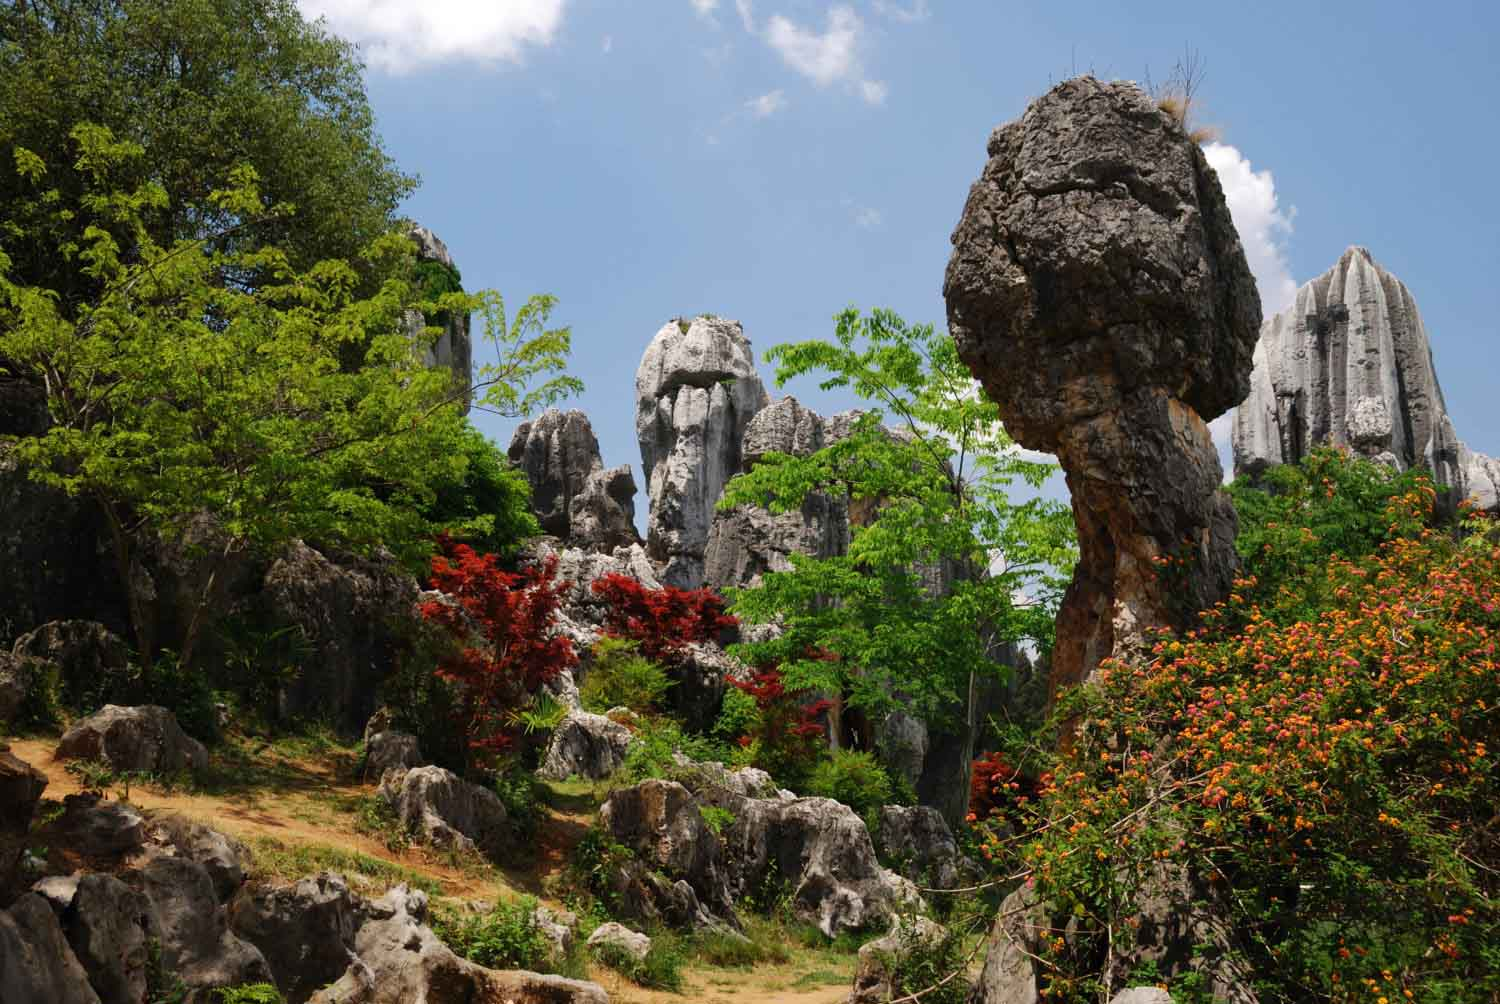 The Stone Forest – Shilin Stone Forest, China